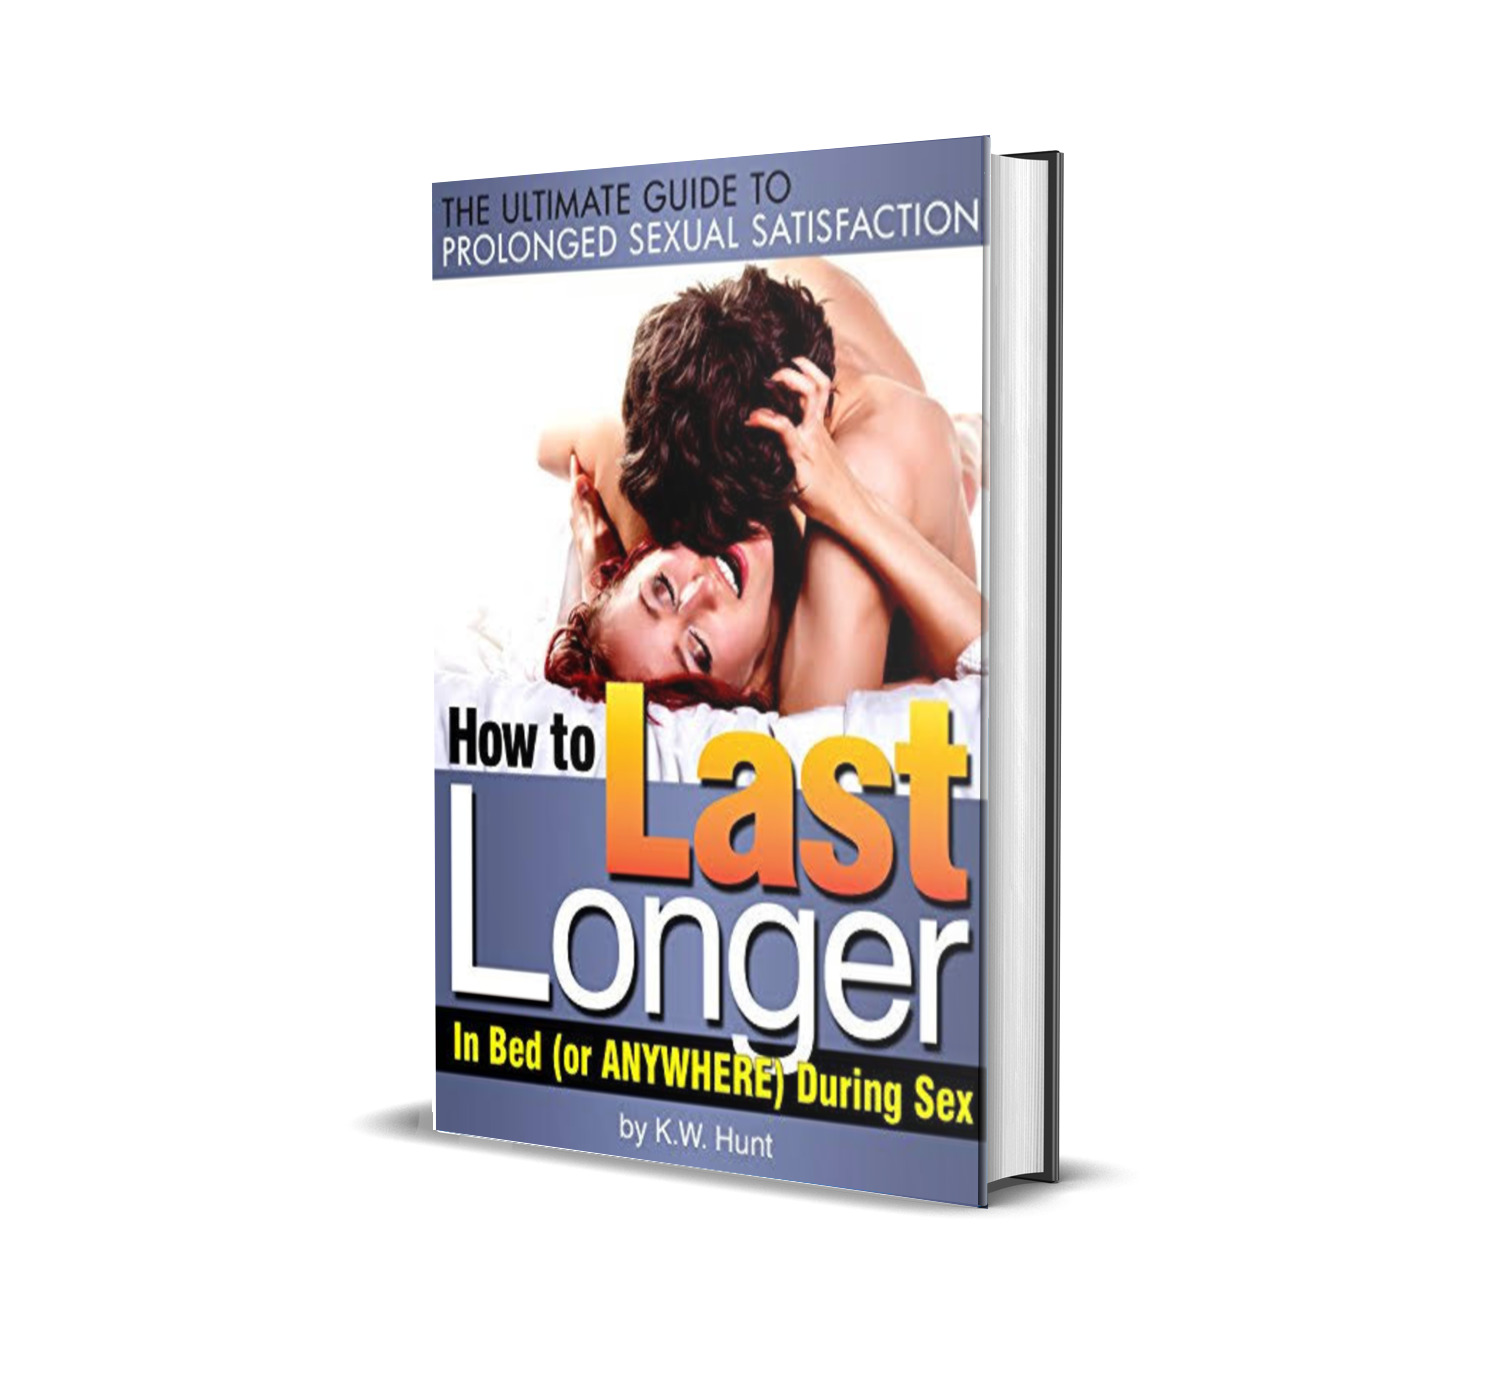 How to last longer in bed or anywhere during sex - K. W Hunt